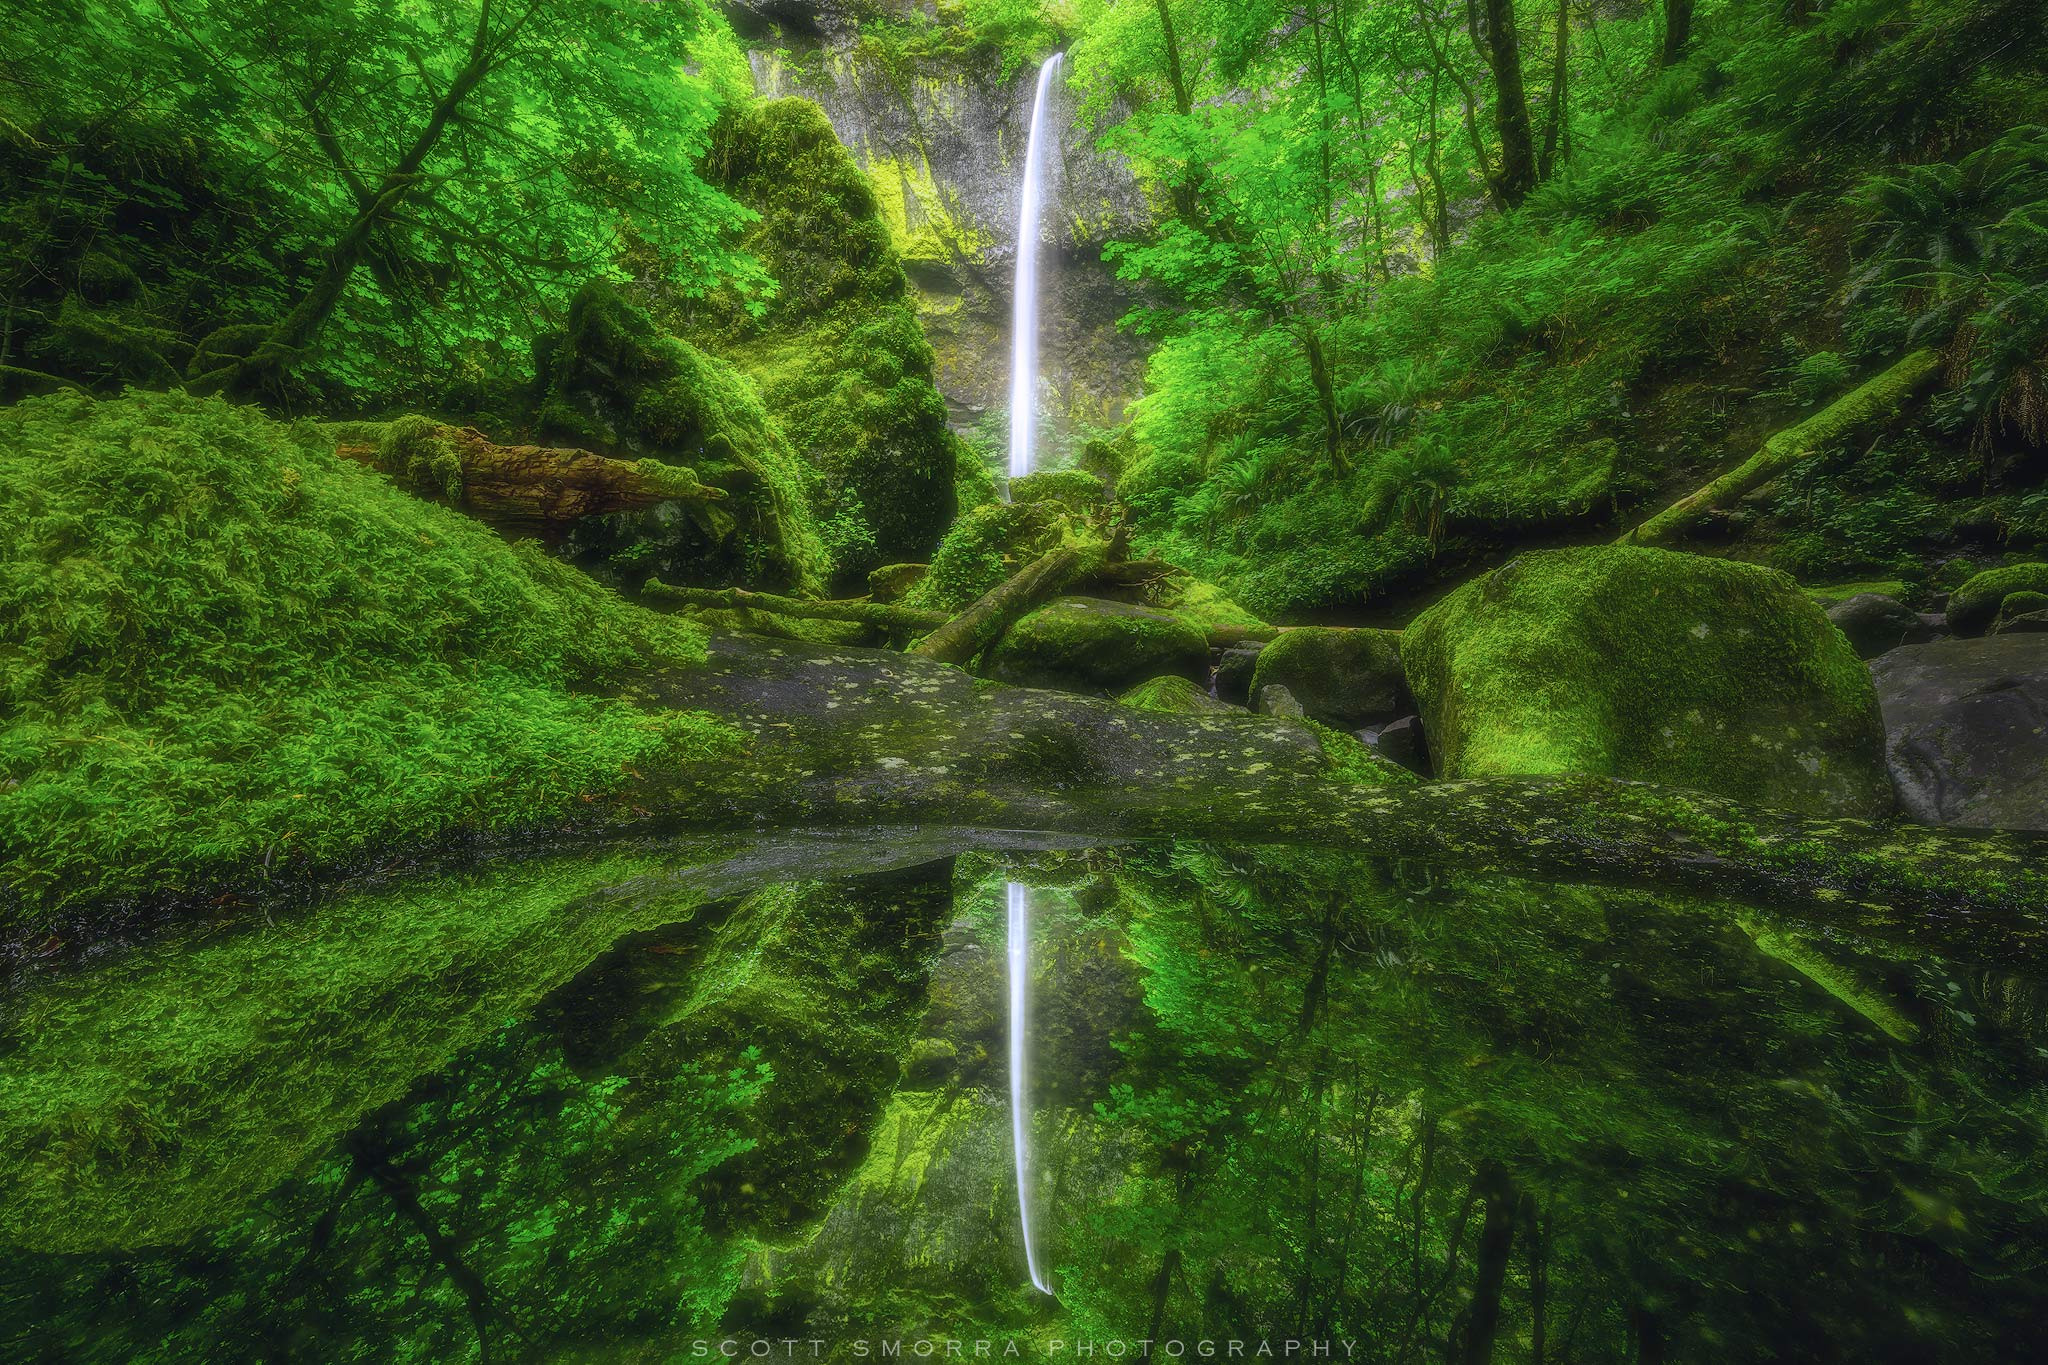 Fine Art Limited Edition of 100 - The reflection of Elowah Falls in a small pool below the falls. The vibrant and lush spring...